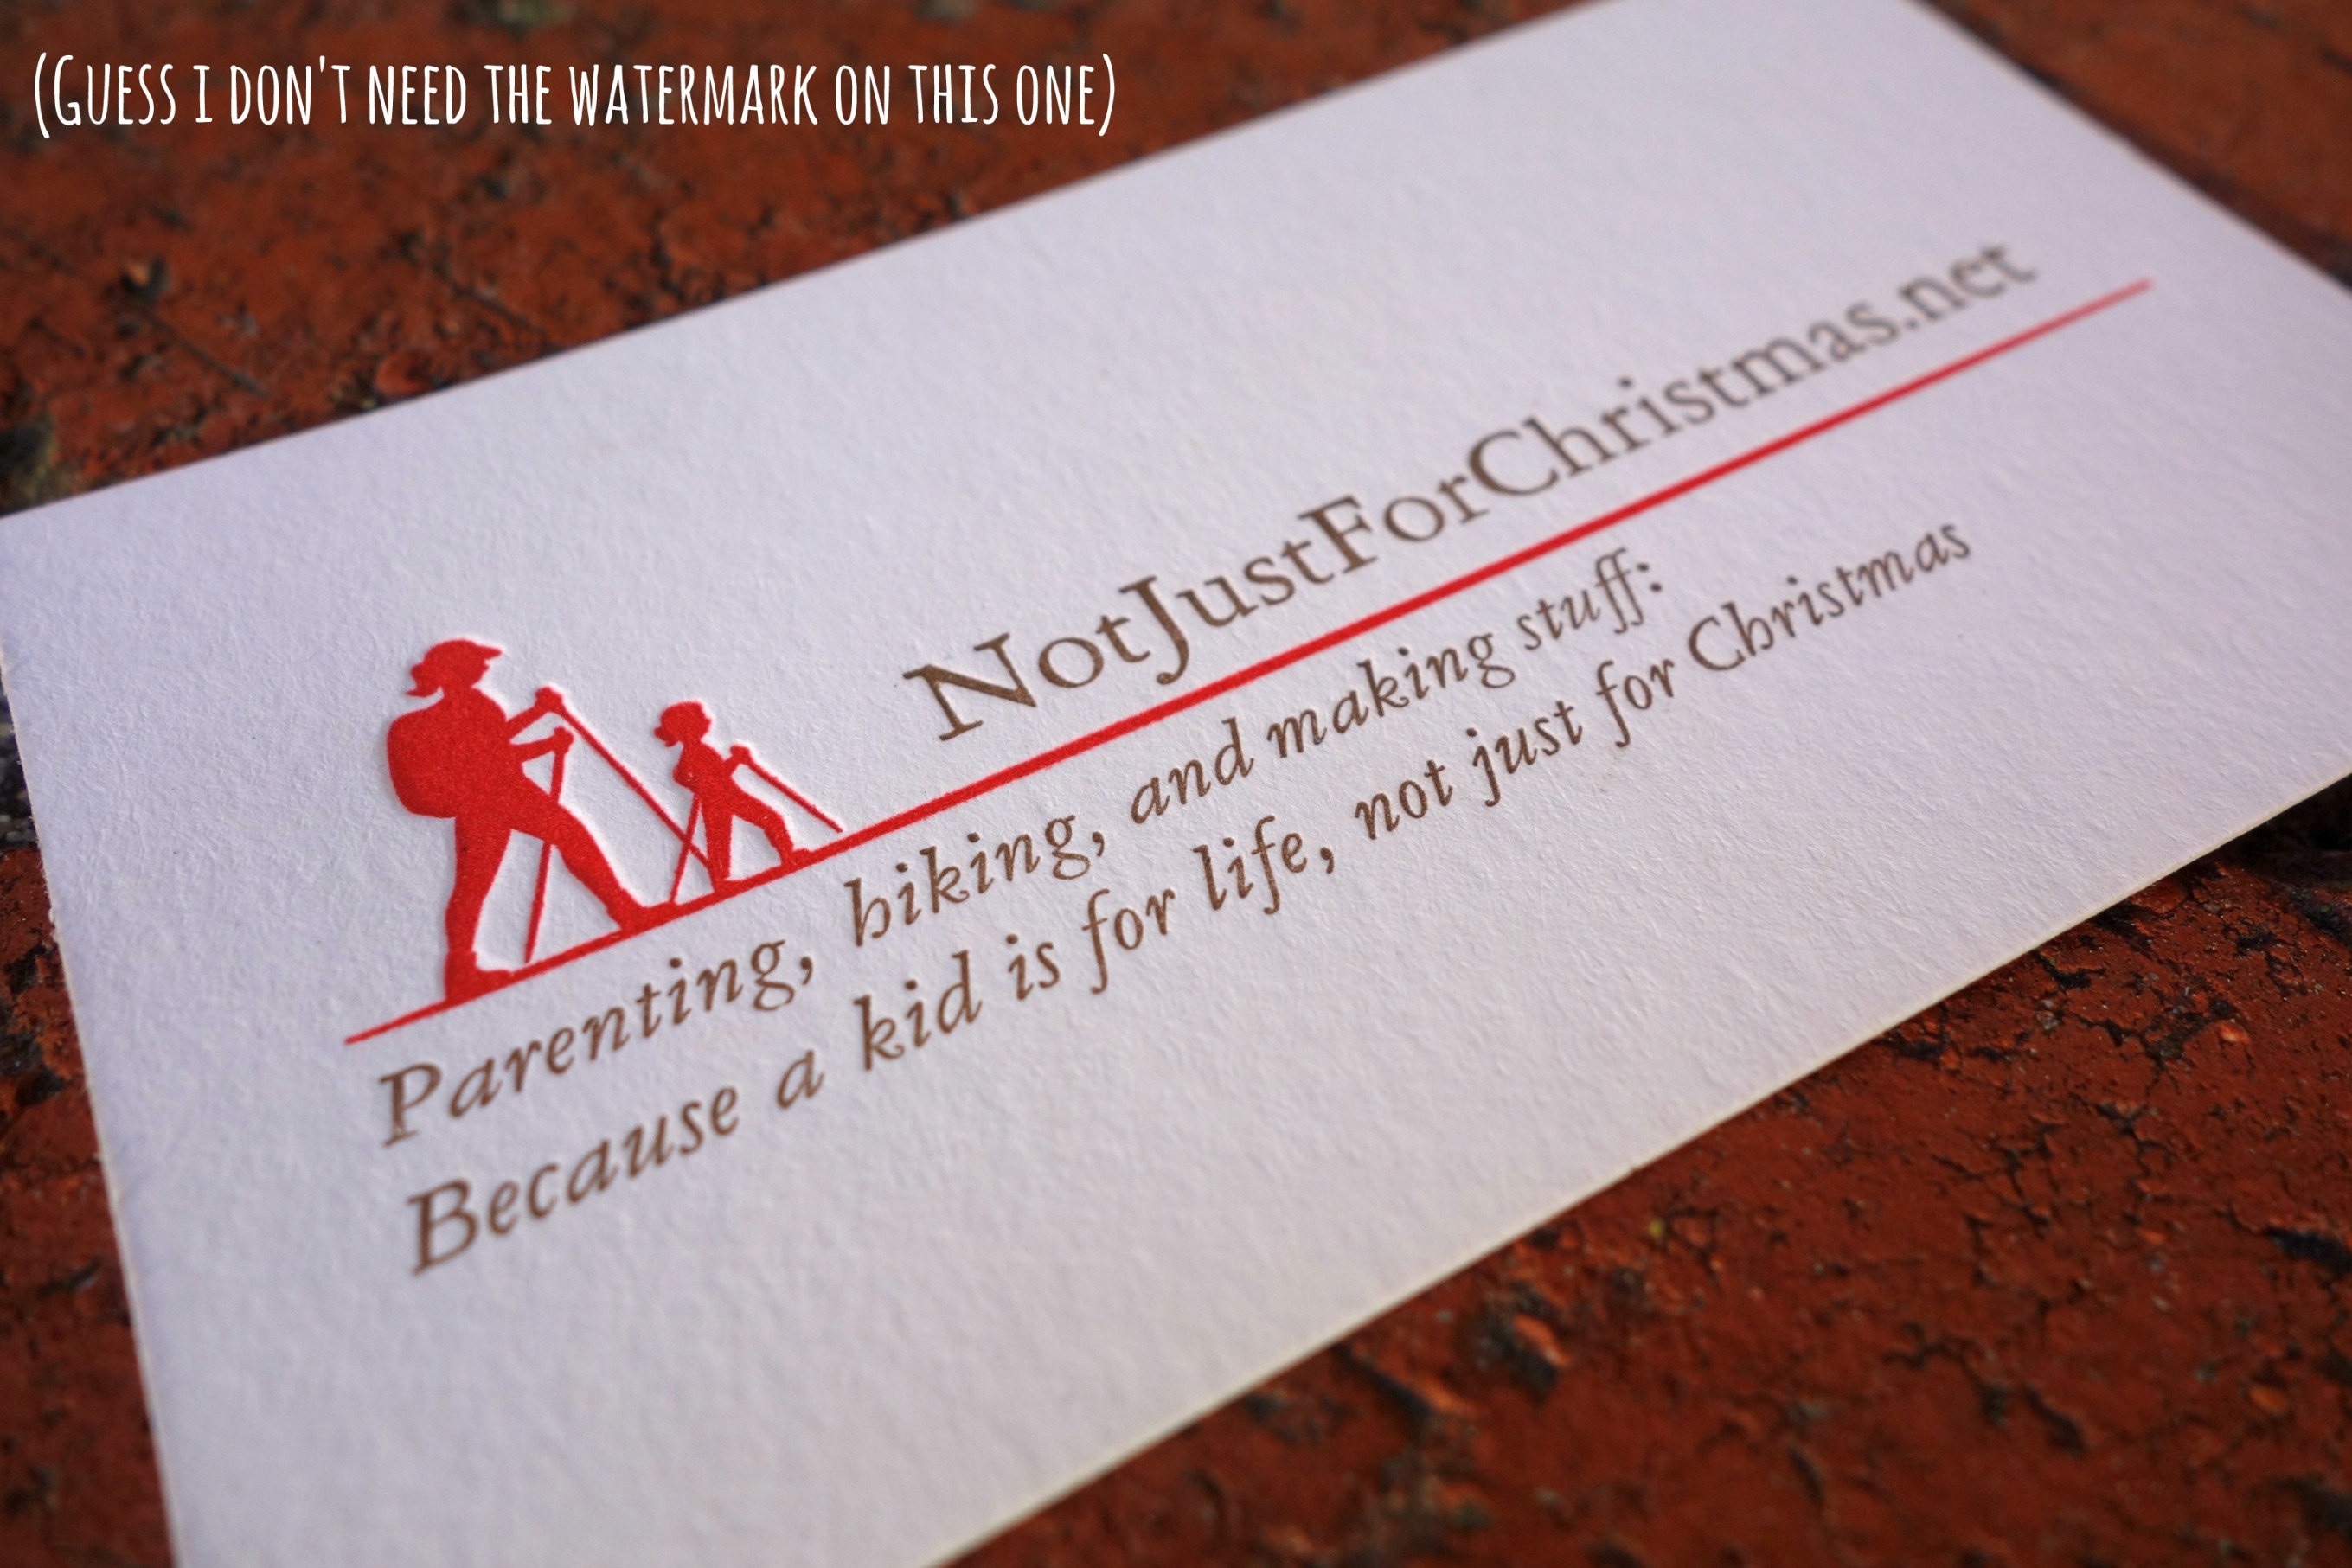 letterpress business card.jpg